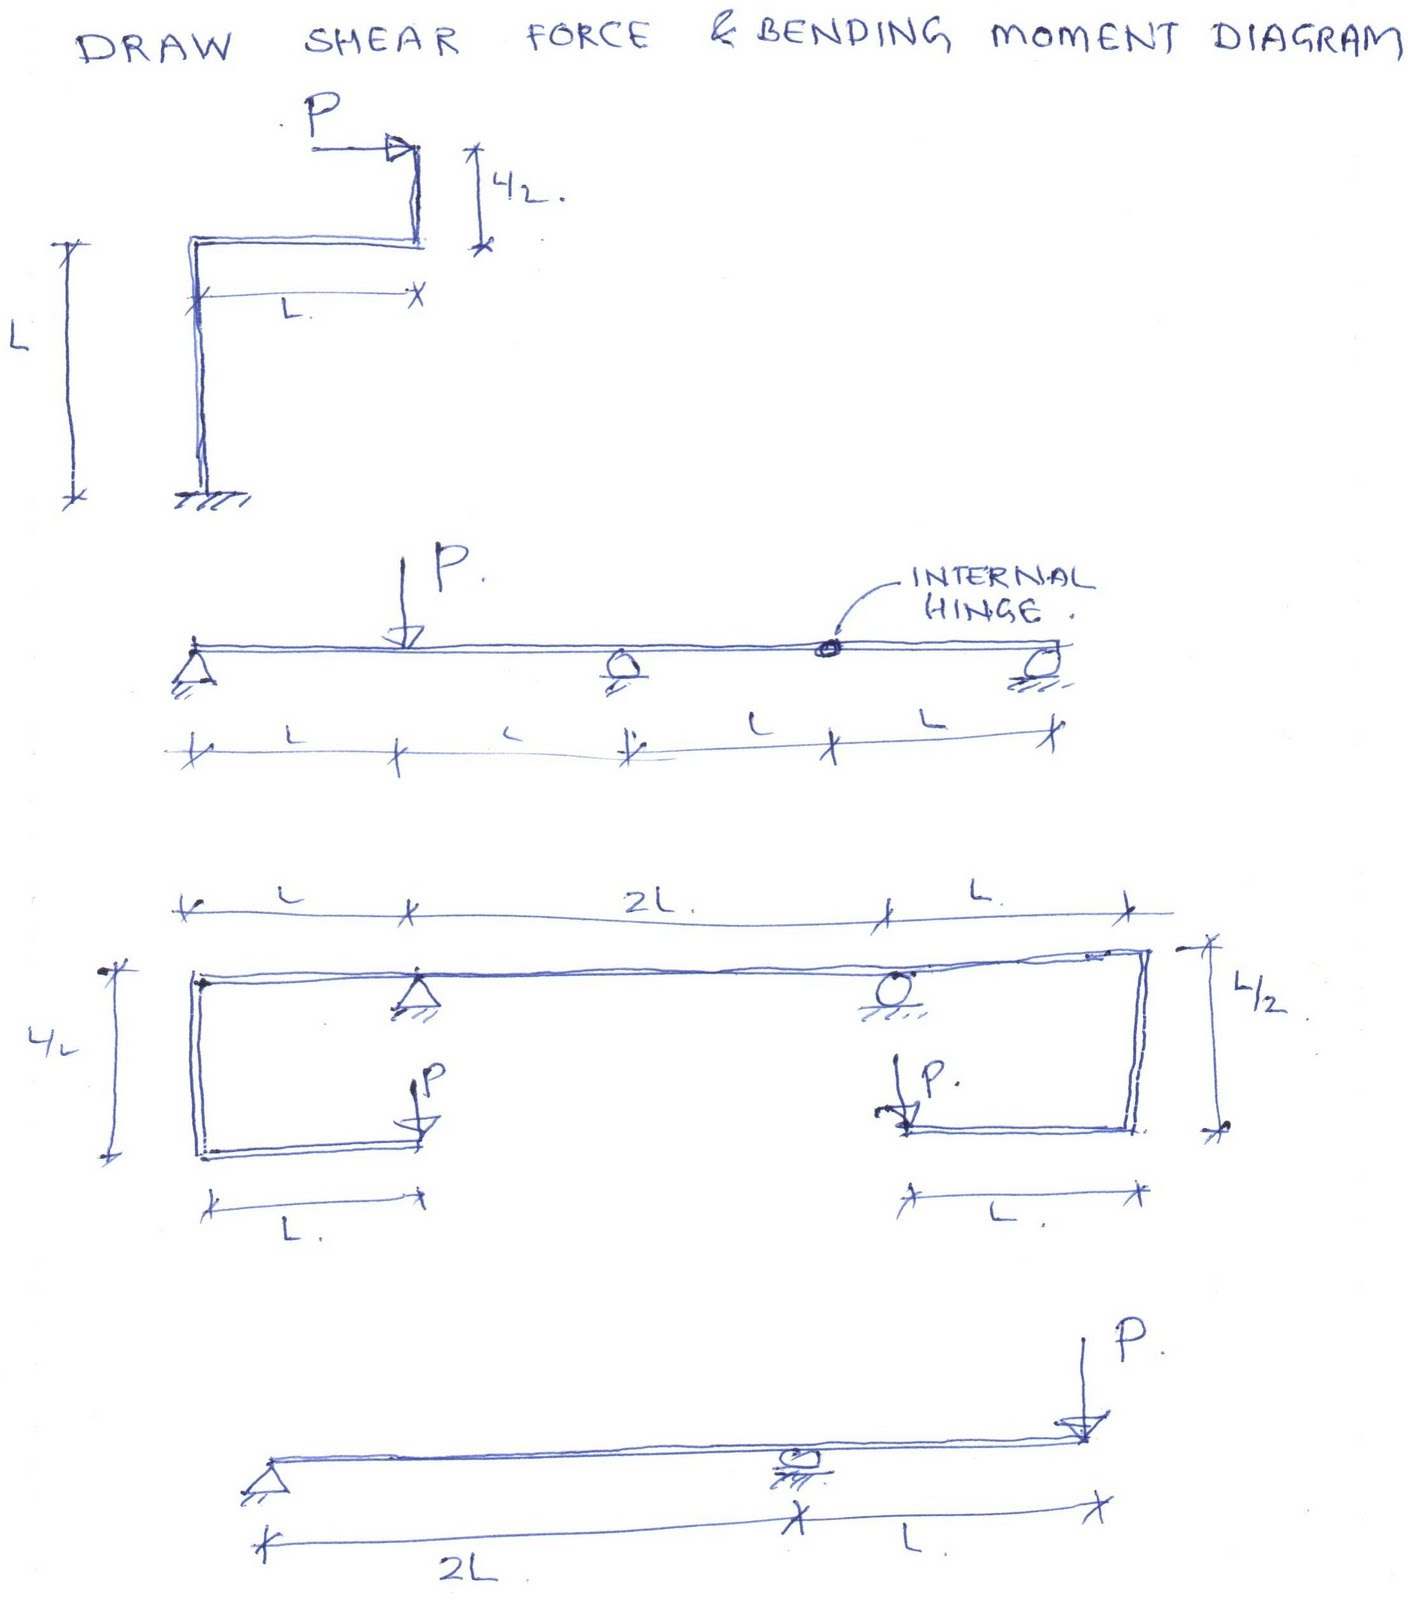 Shear Stress And Bending Moment Diagram Alpine Ktp 445u Wiring Structural Design 2010